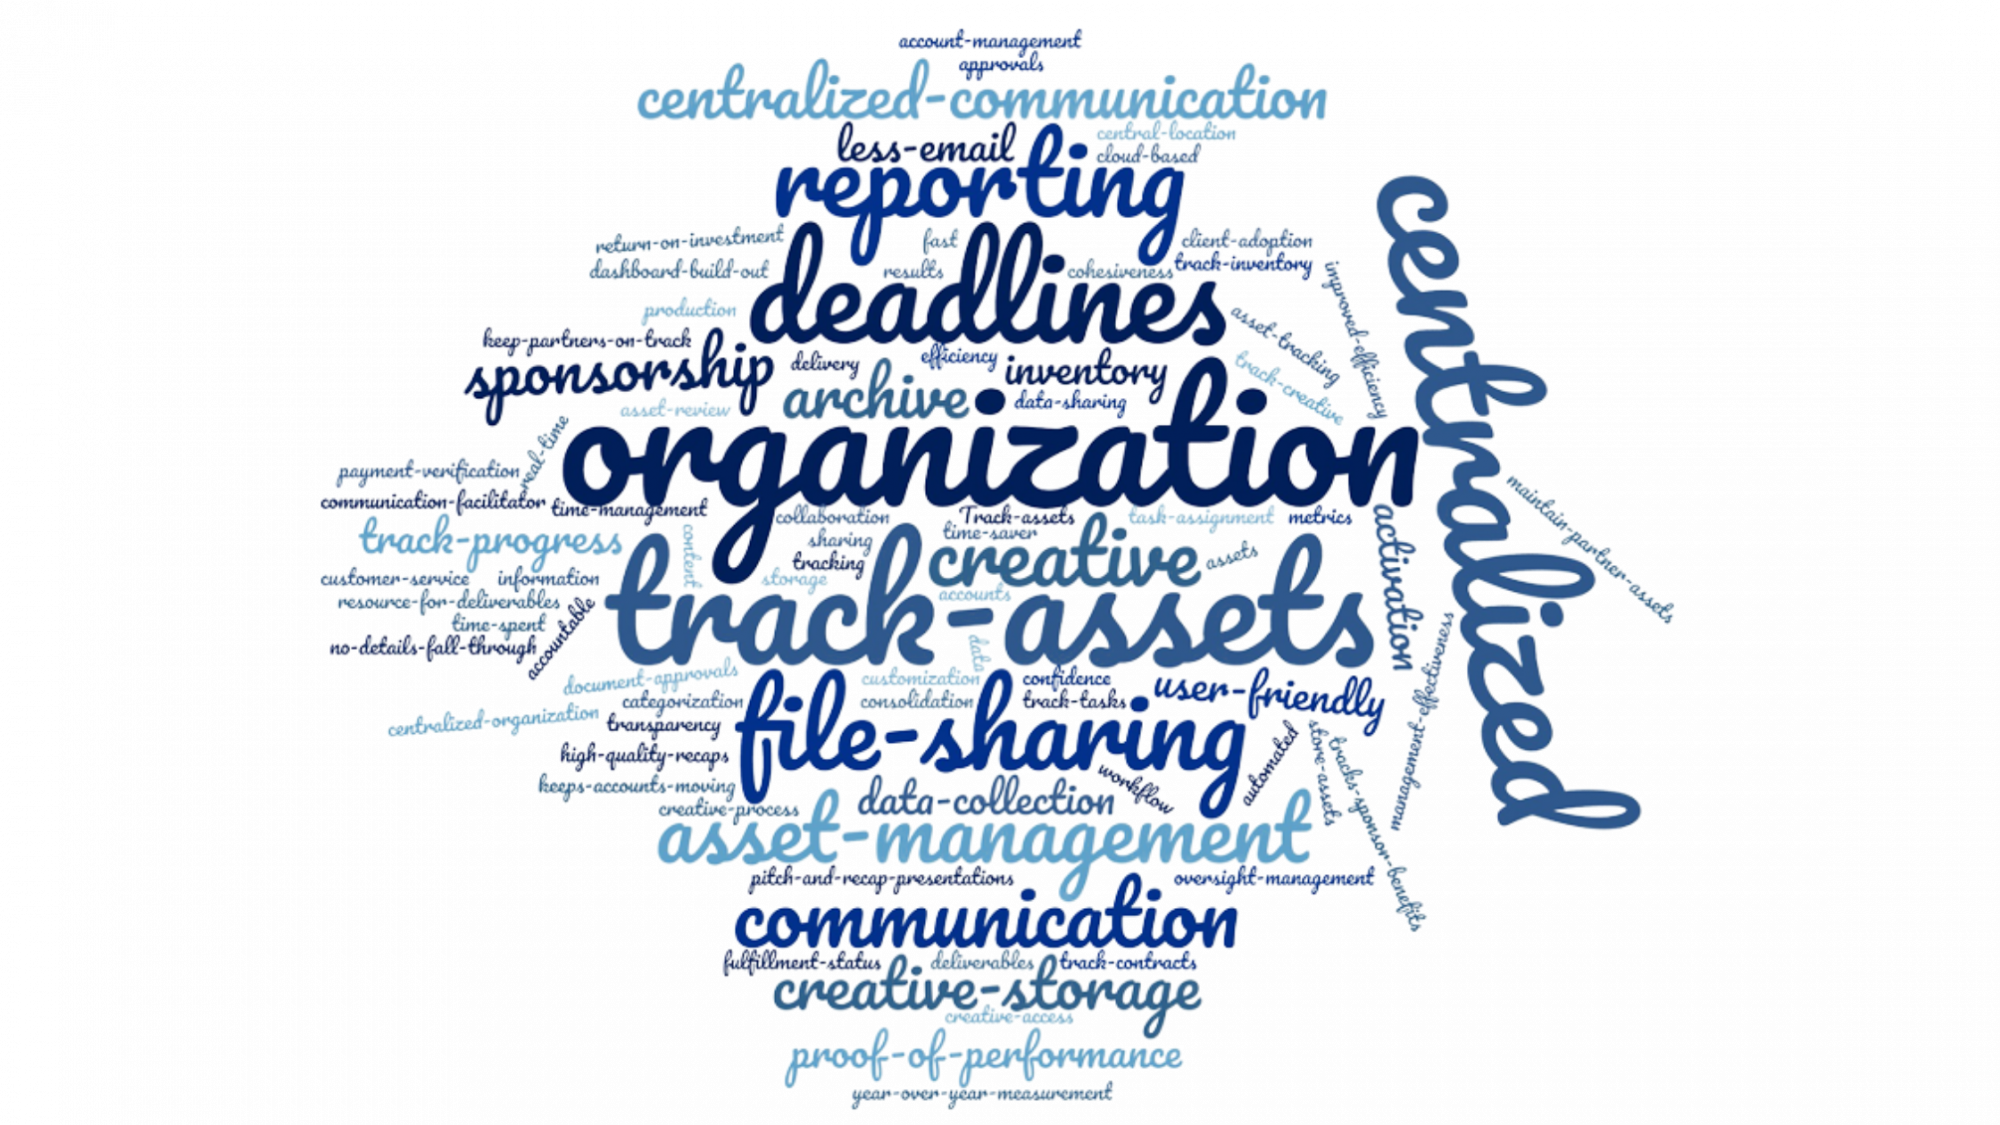 Customer Survey Results Word Cloud from Trak